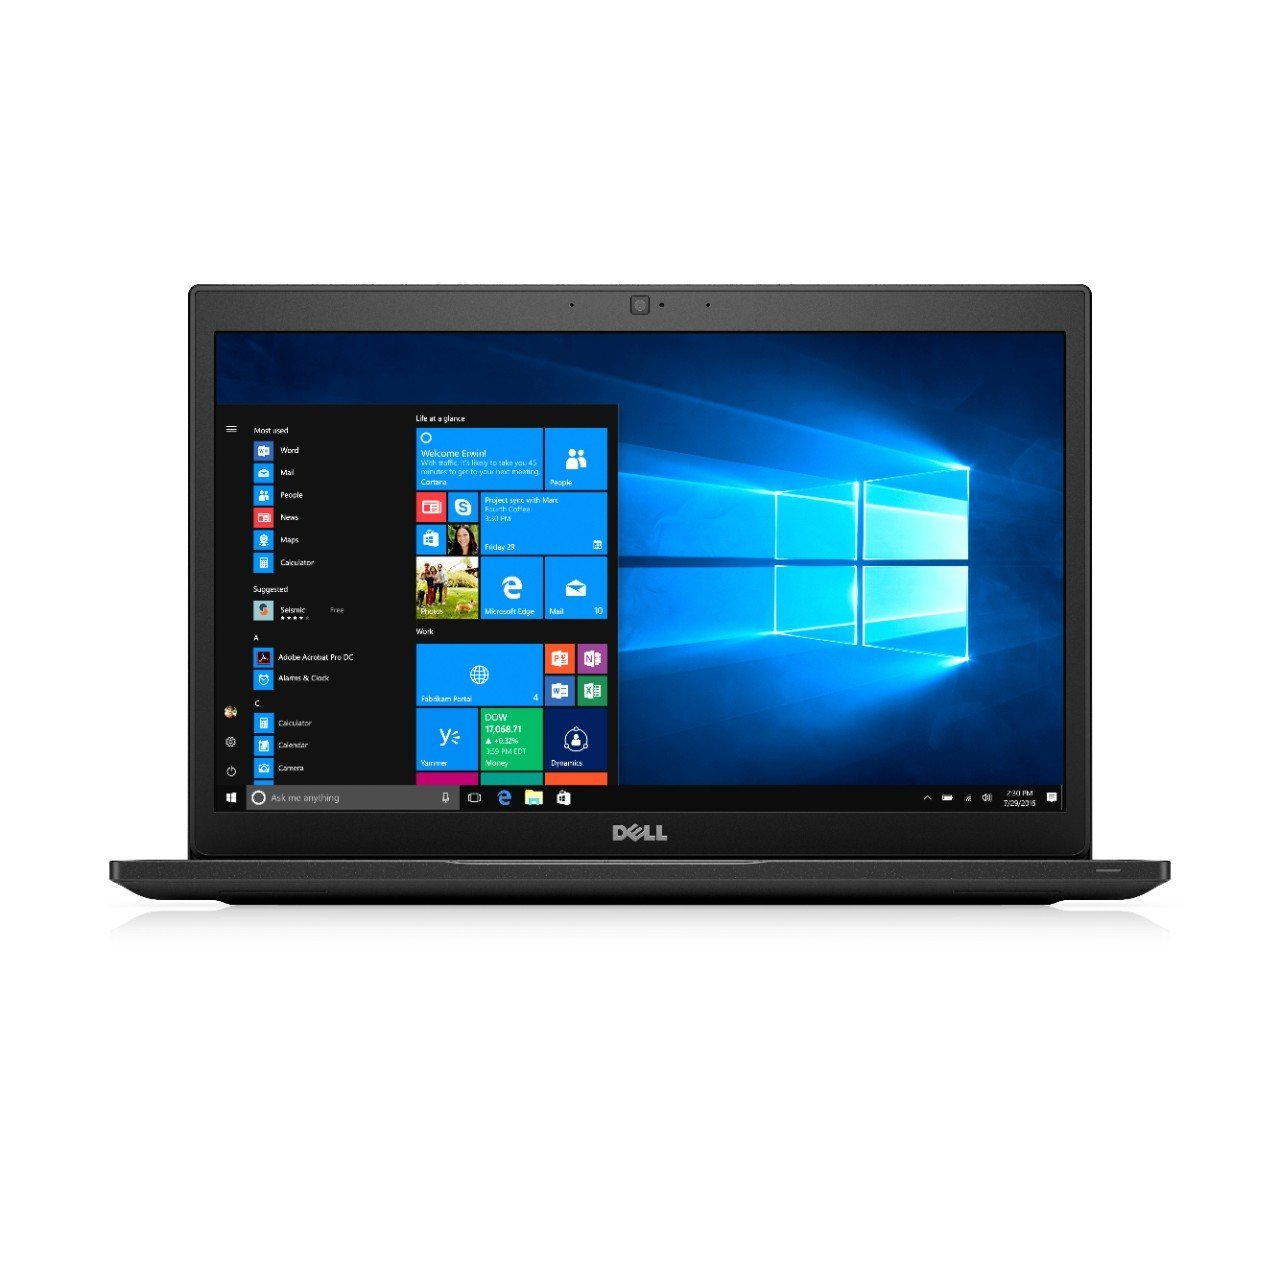 Ultrabook Dell Latitude 7480 14 Full HD Intel Core i5-7200U RAM 8GB SSD 256GB Windows 10 Pro